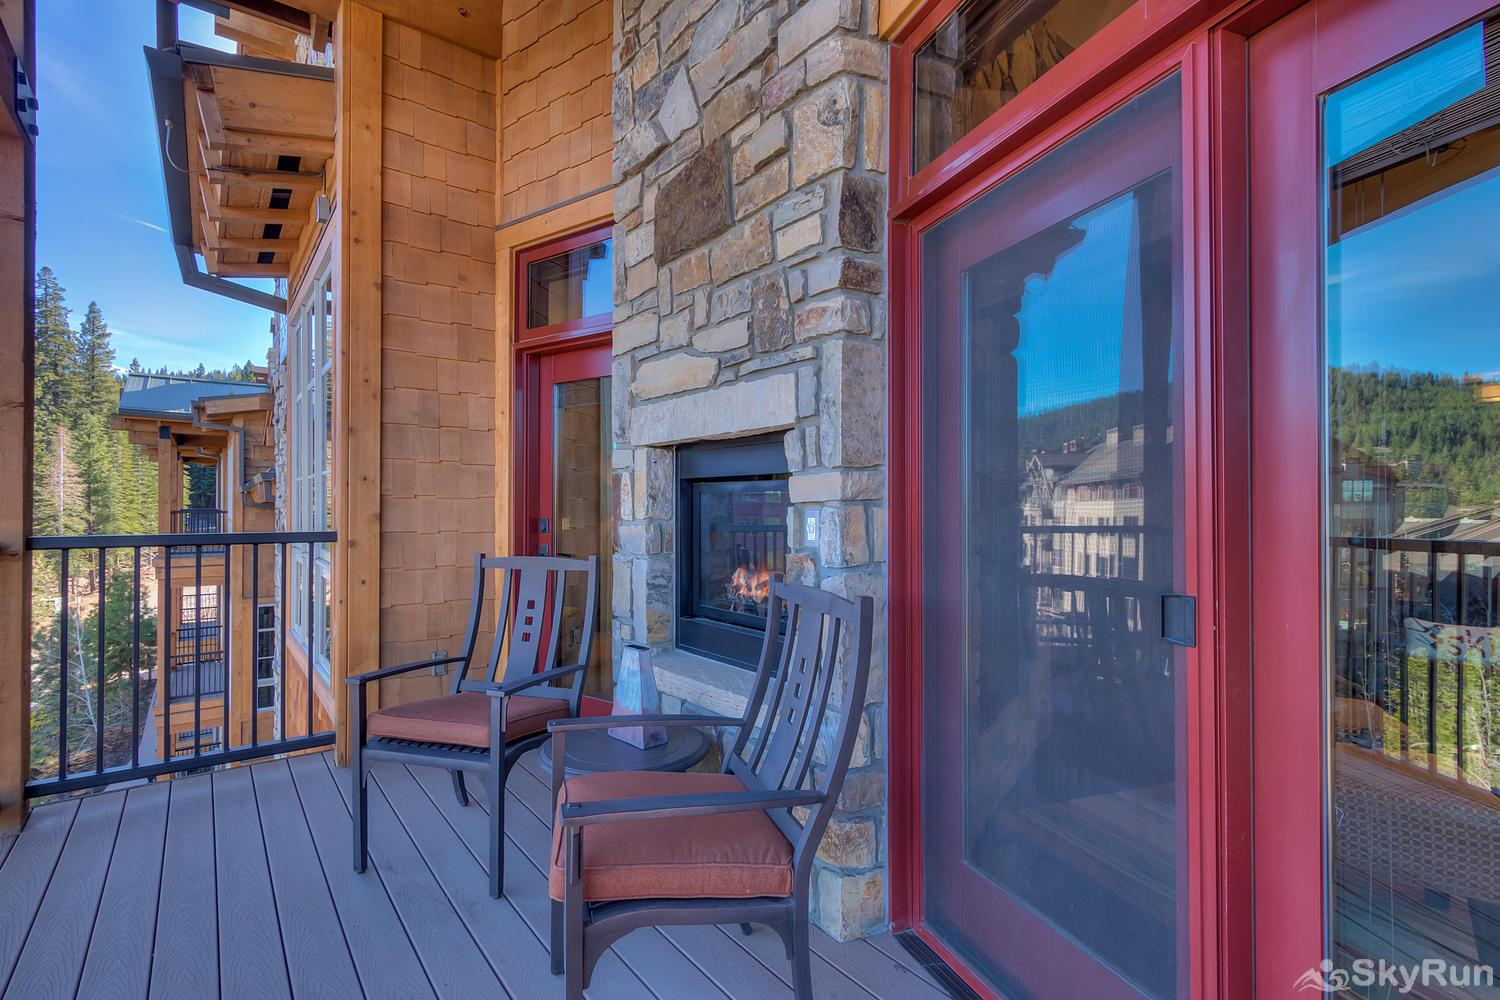 Sierra Range Northstar Lodge Luxury Condo Covered Balcony with Fireplace